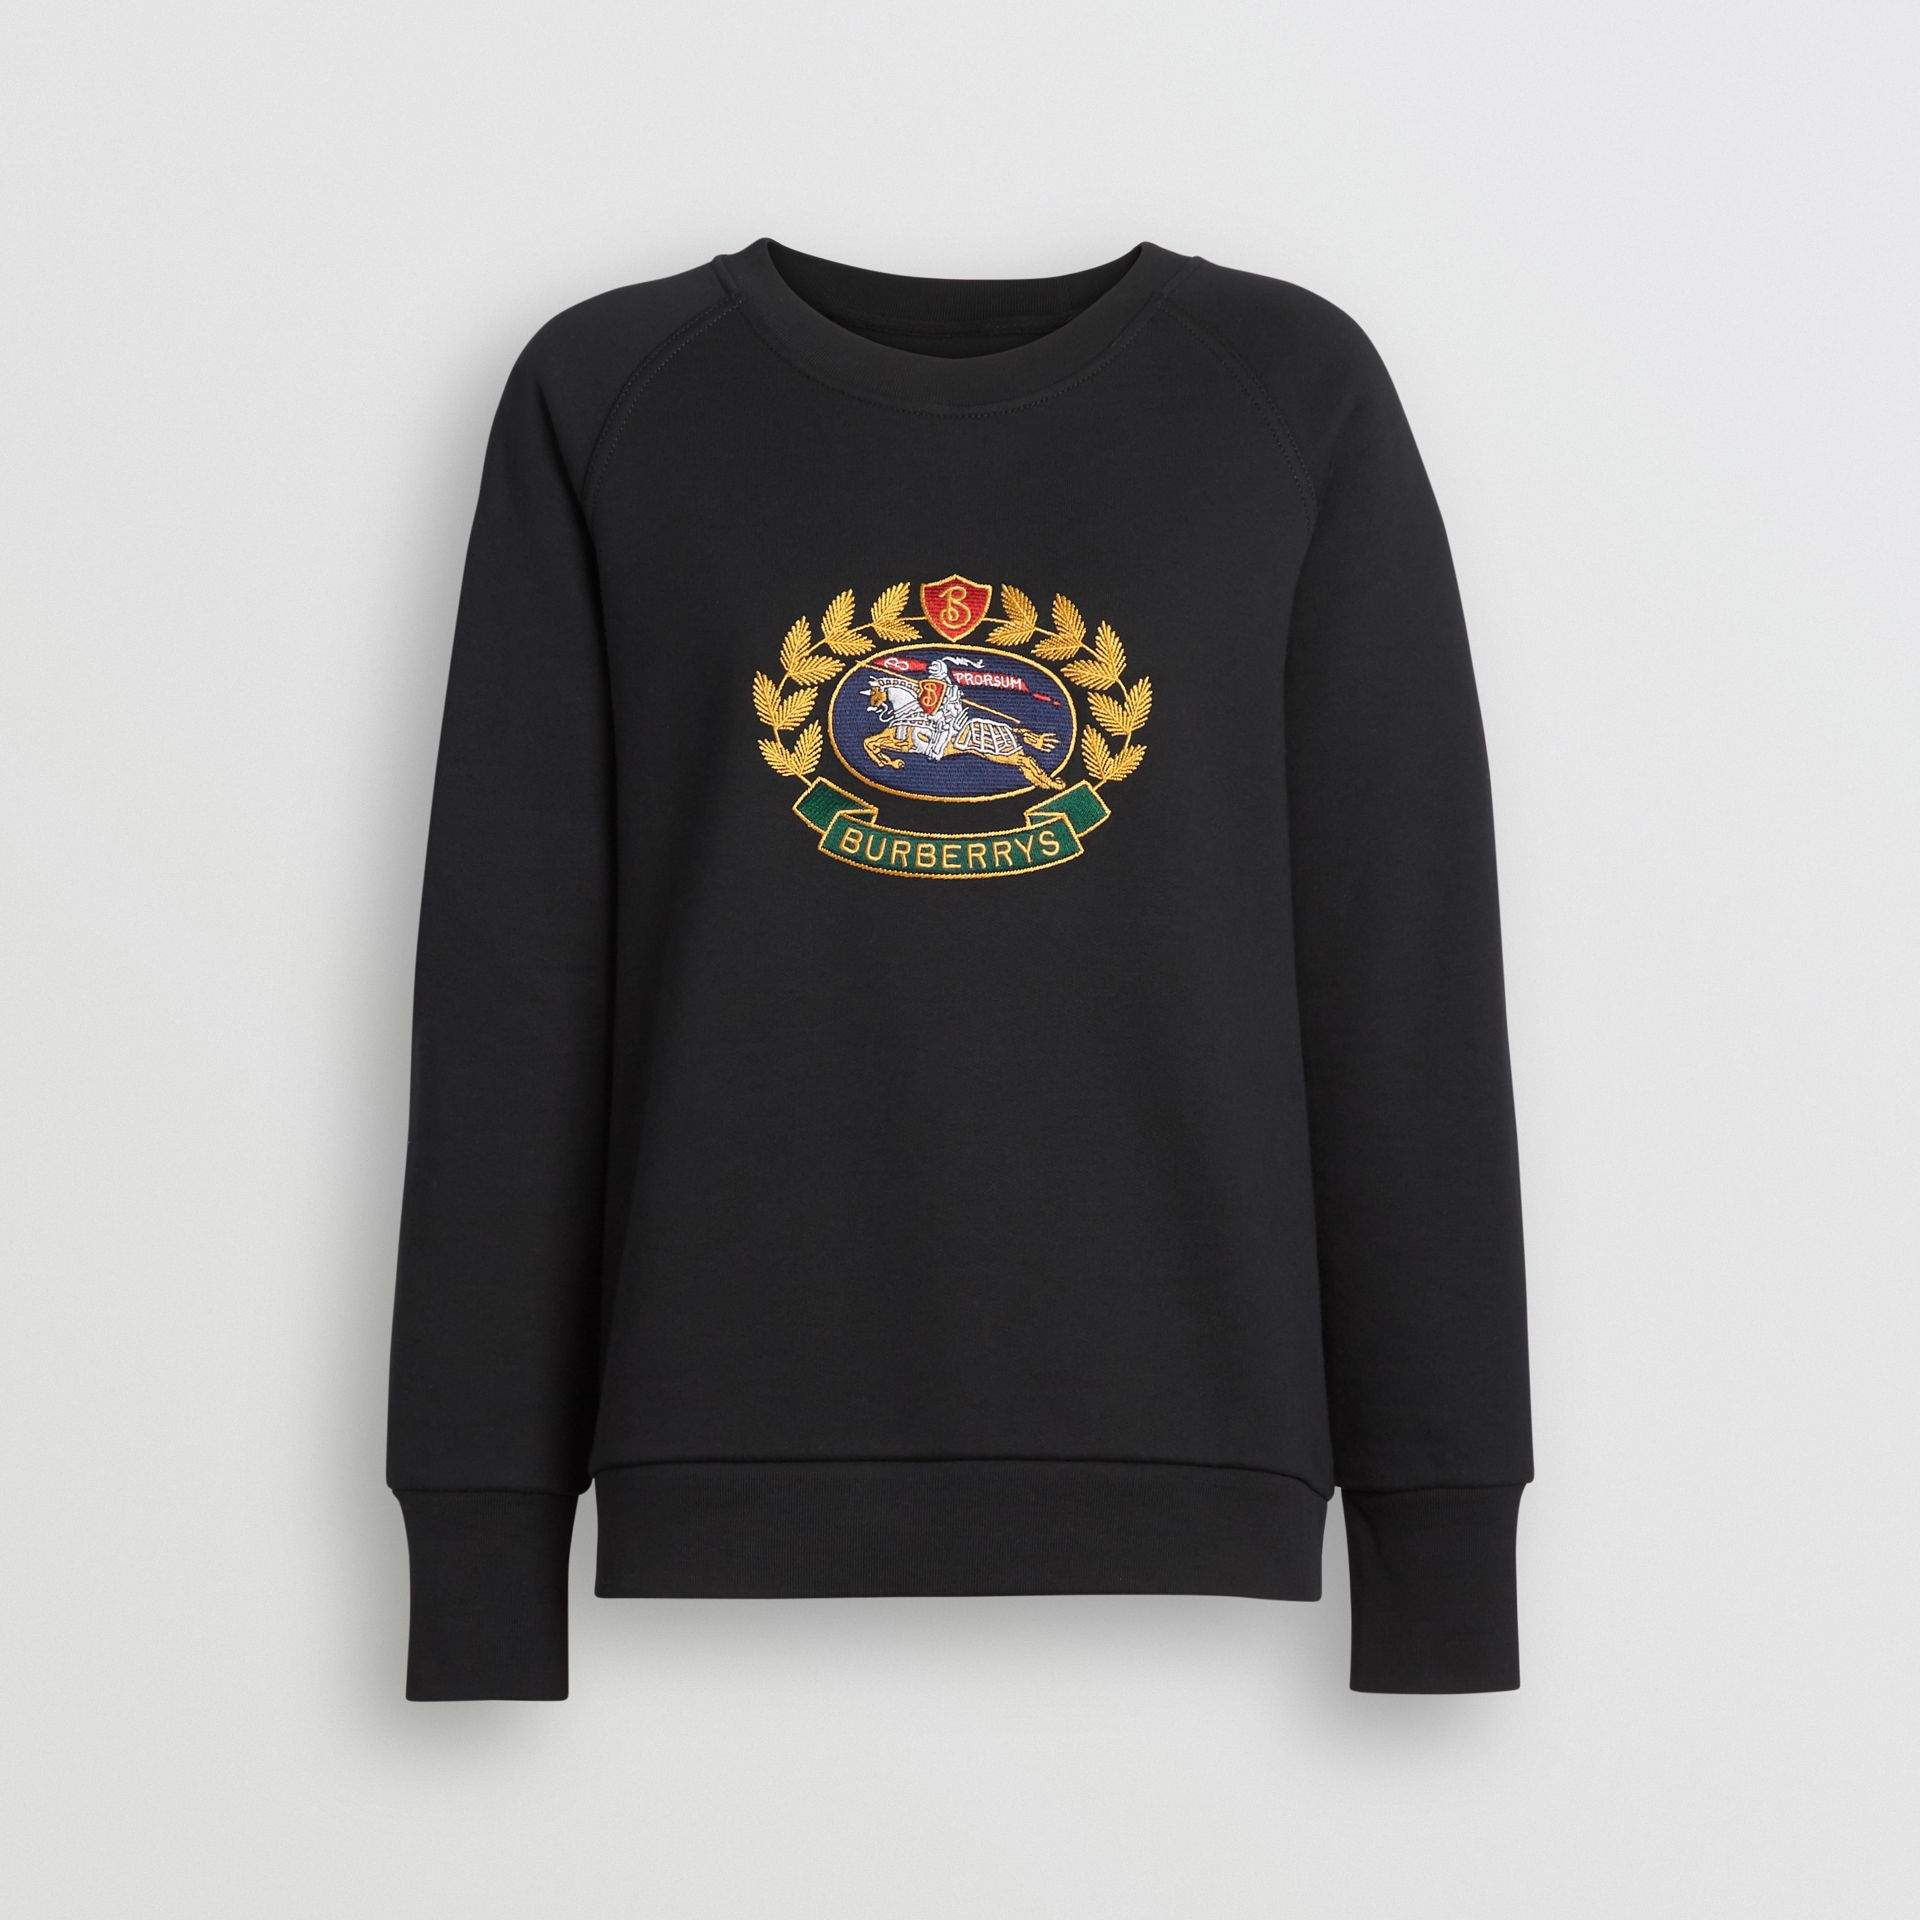 Embroidered Archive Logo Cotton Blend Sweatshirt in Black - Women | Burberry - gallery image 3